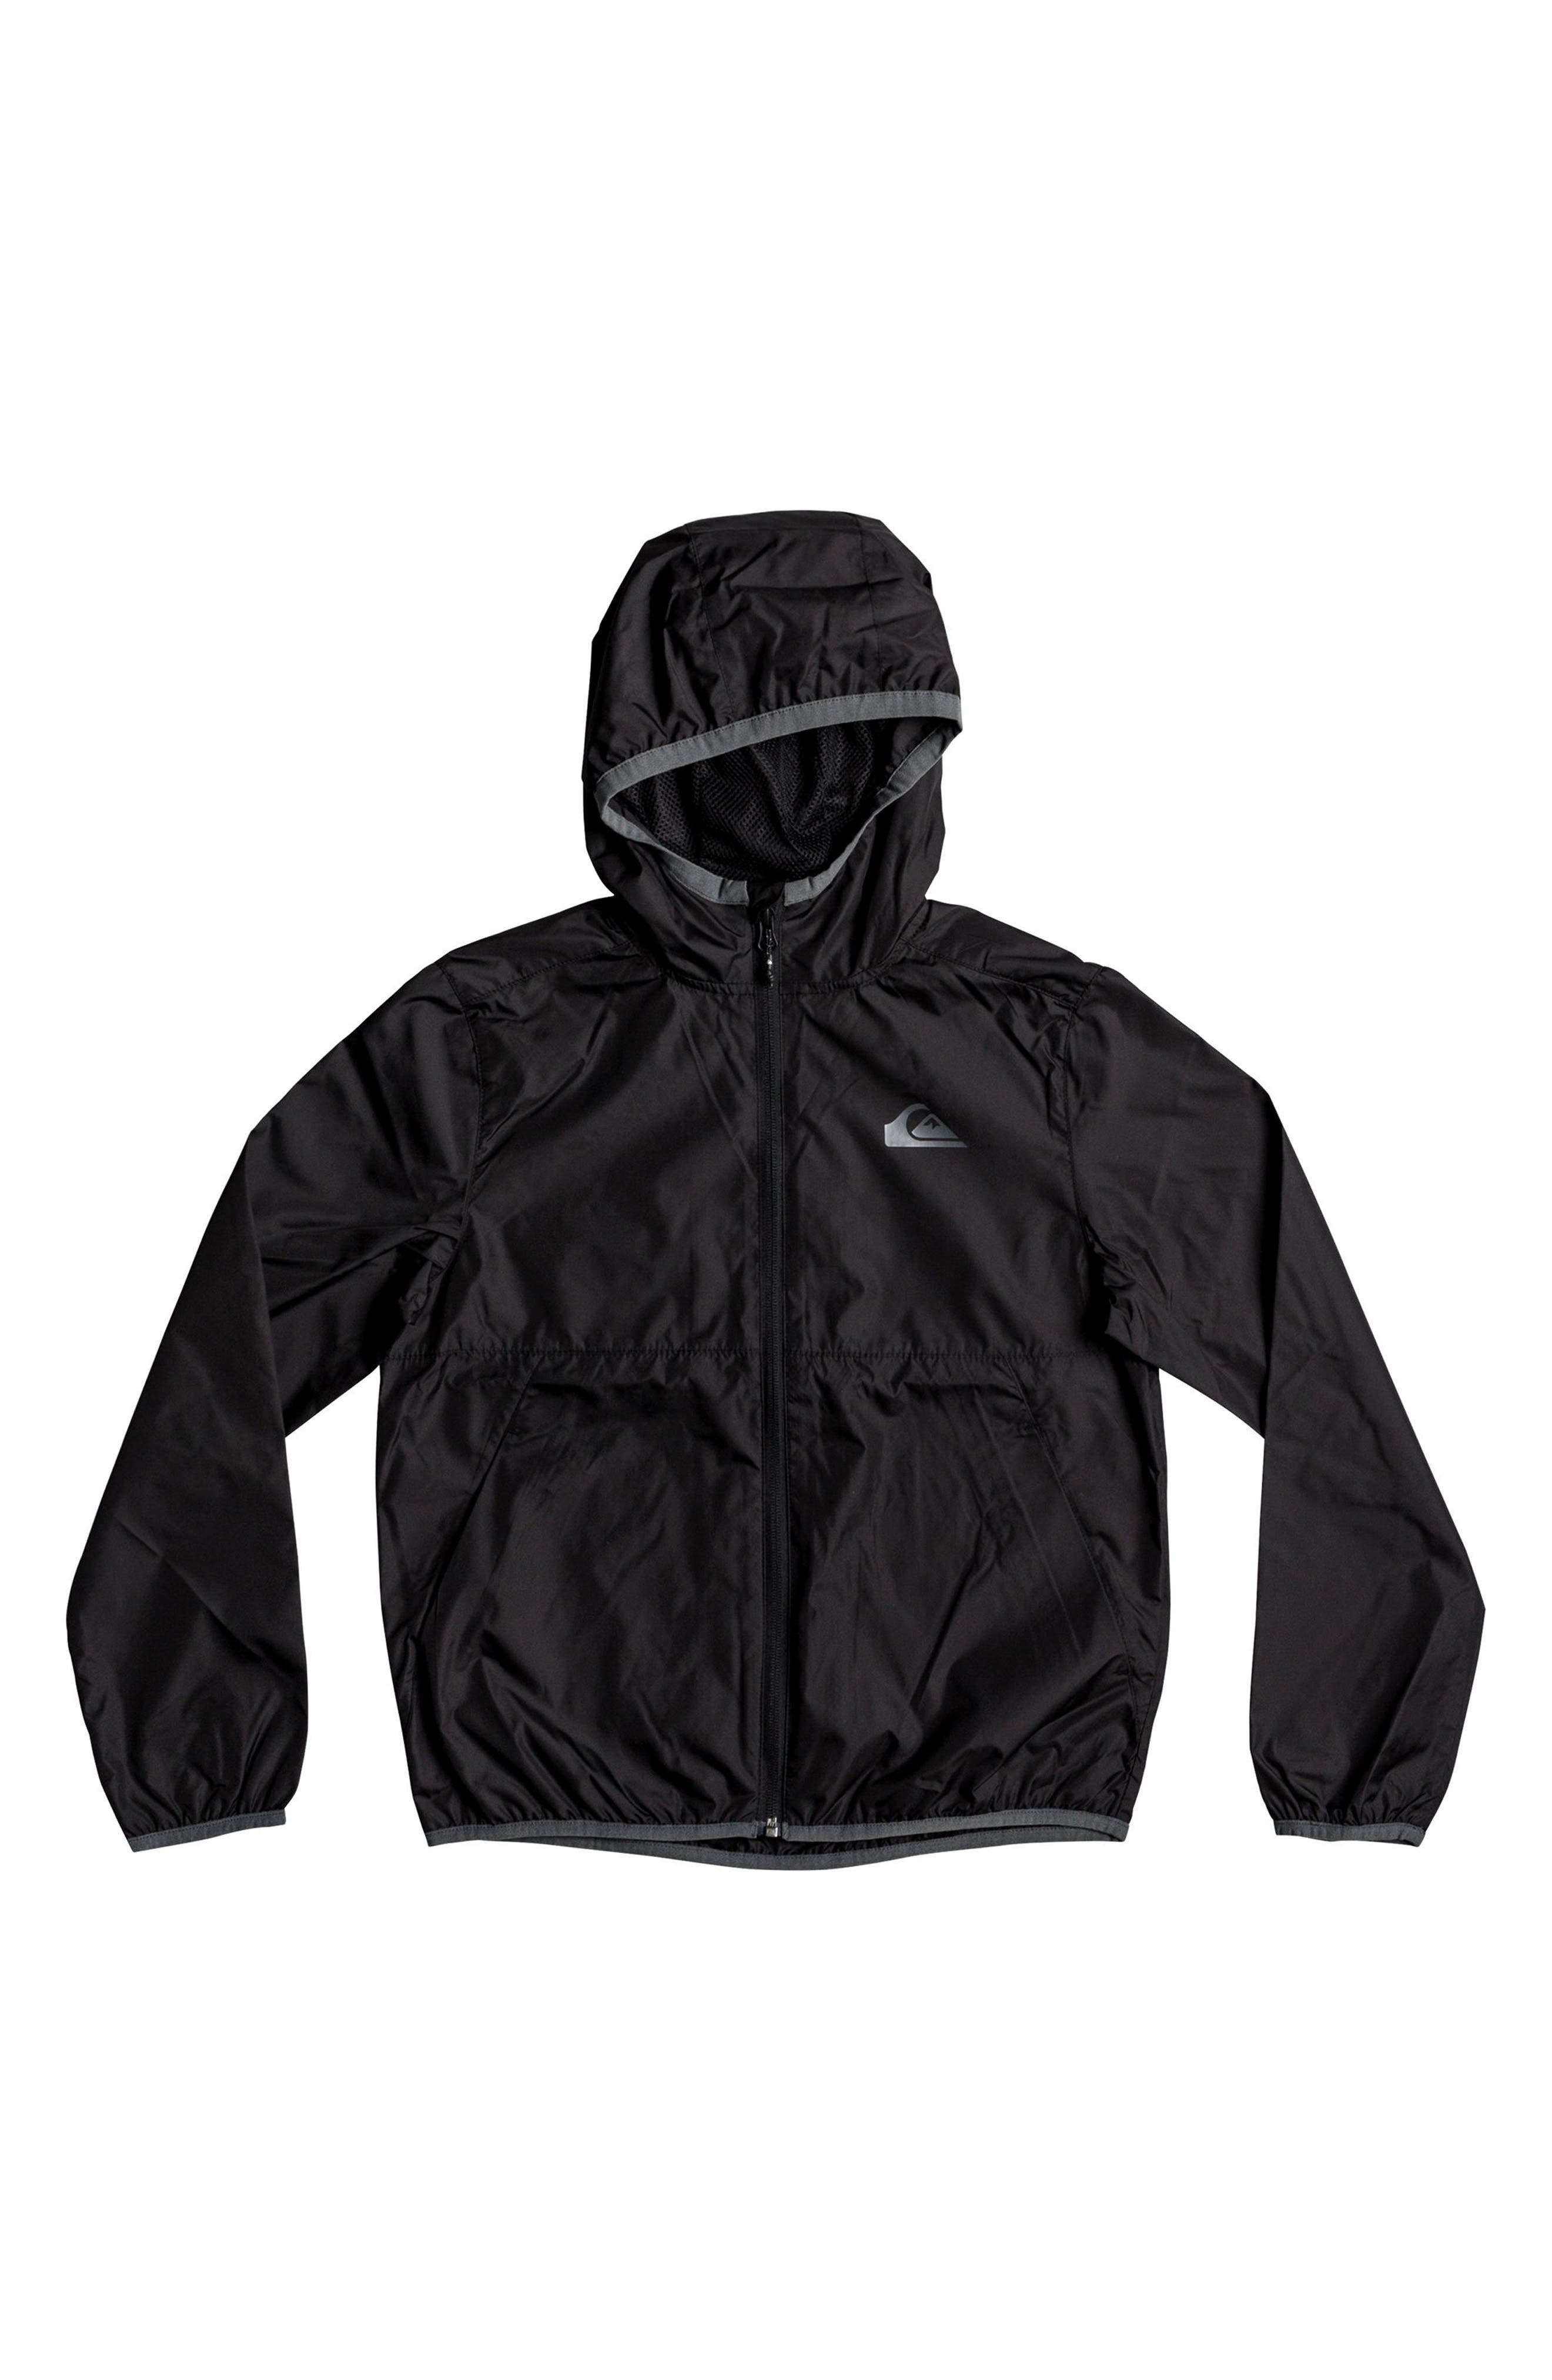 Contrasted Water Resistant Hooded Windbreaker,                             Main thumbnail 1, color,                             Black